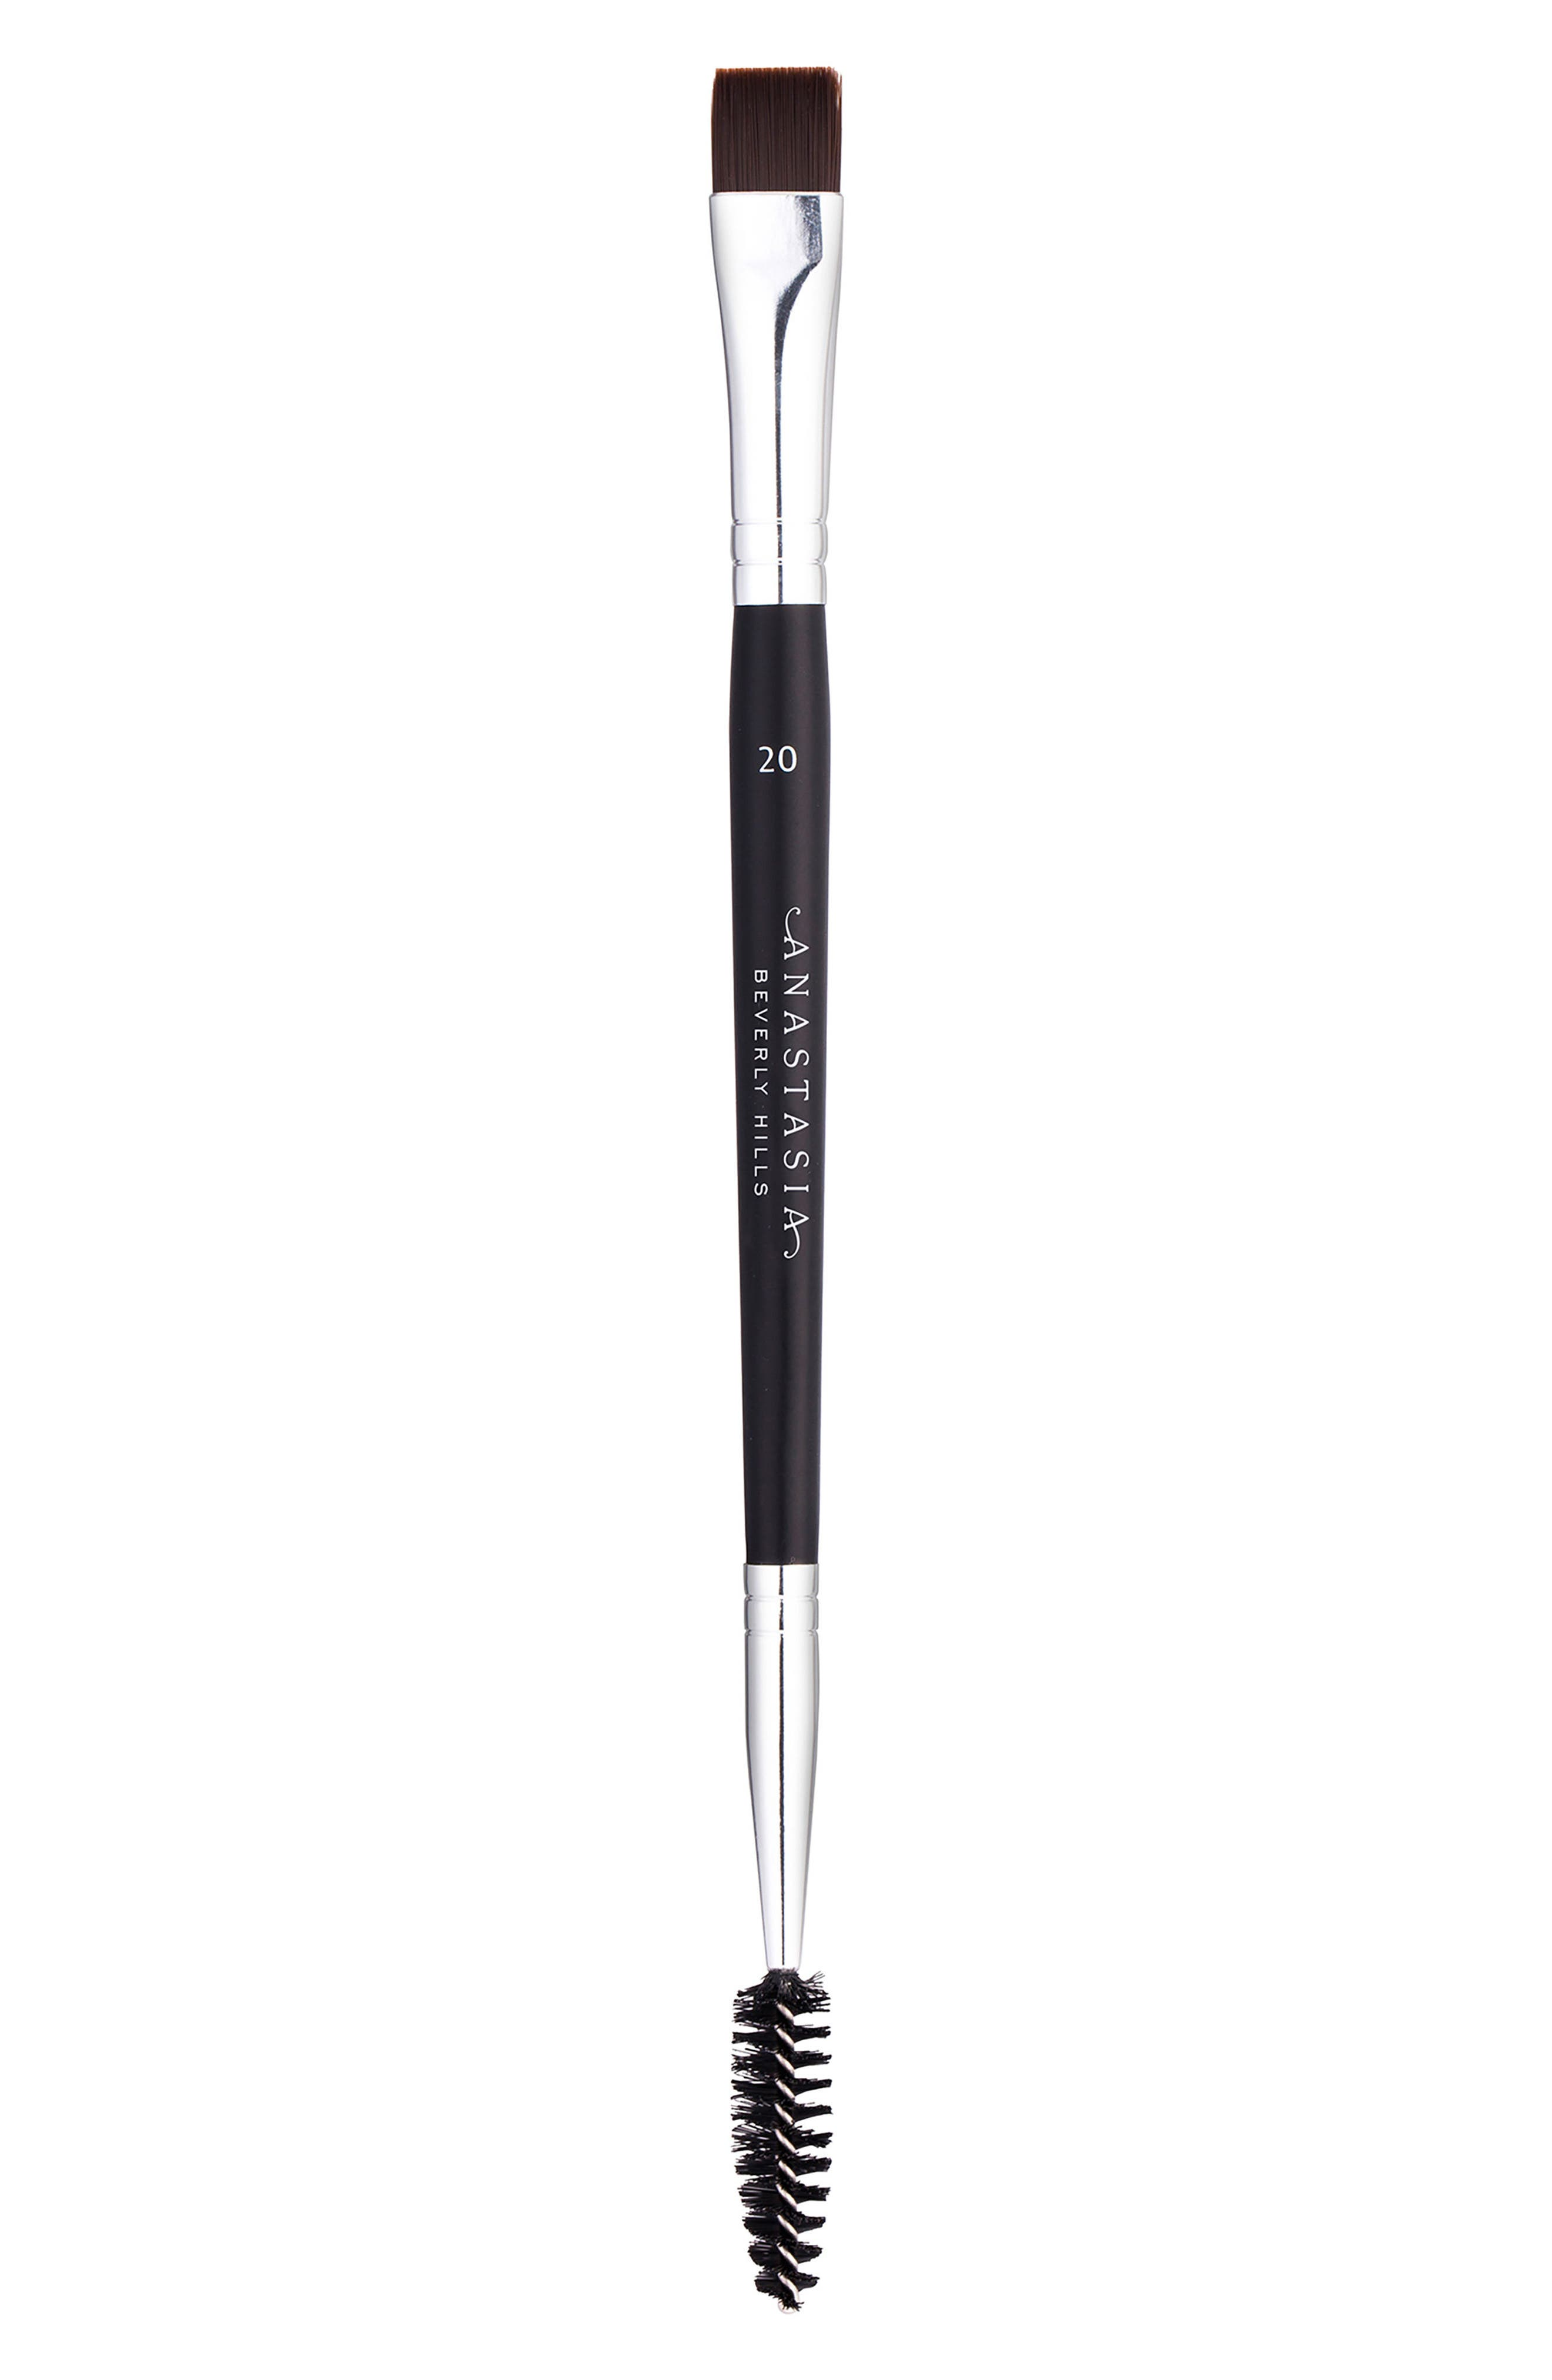 ANASTASIA BEVERLY HILLS #20 Dual Ended Brow & Eyeliner Brush, Main, color, NO COLOR